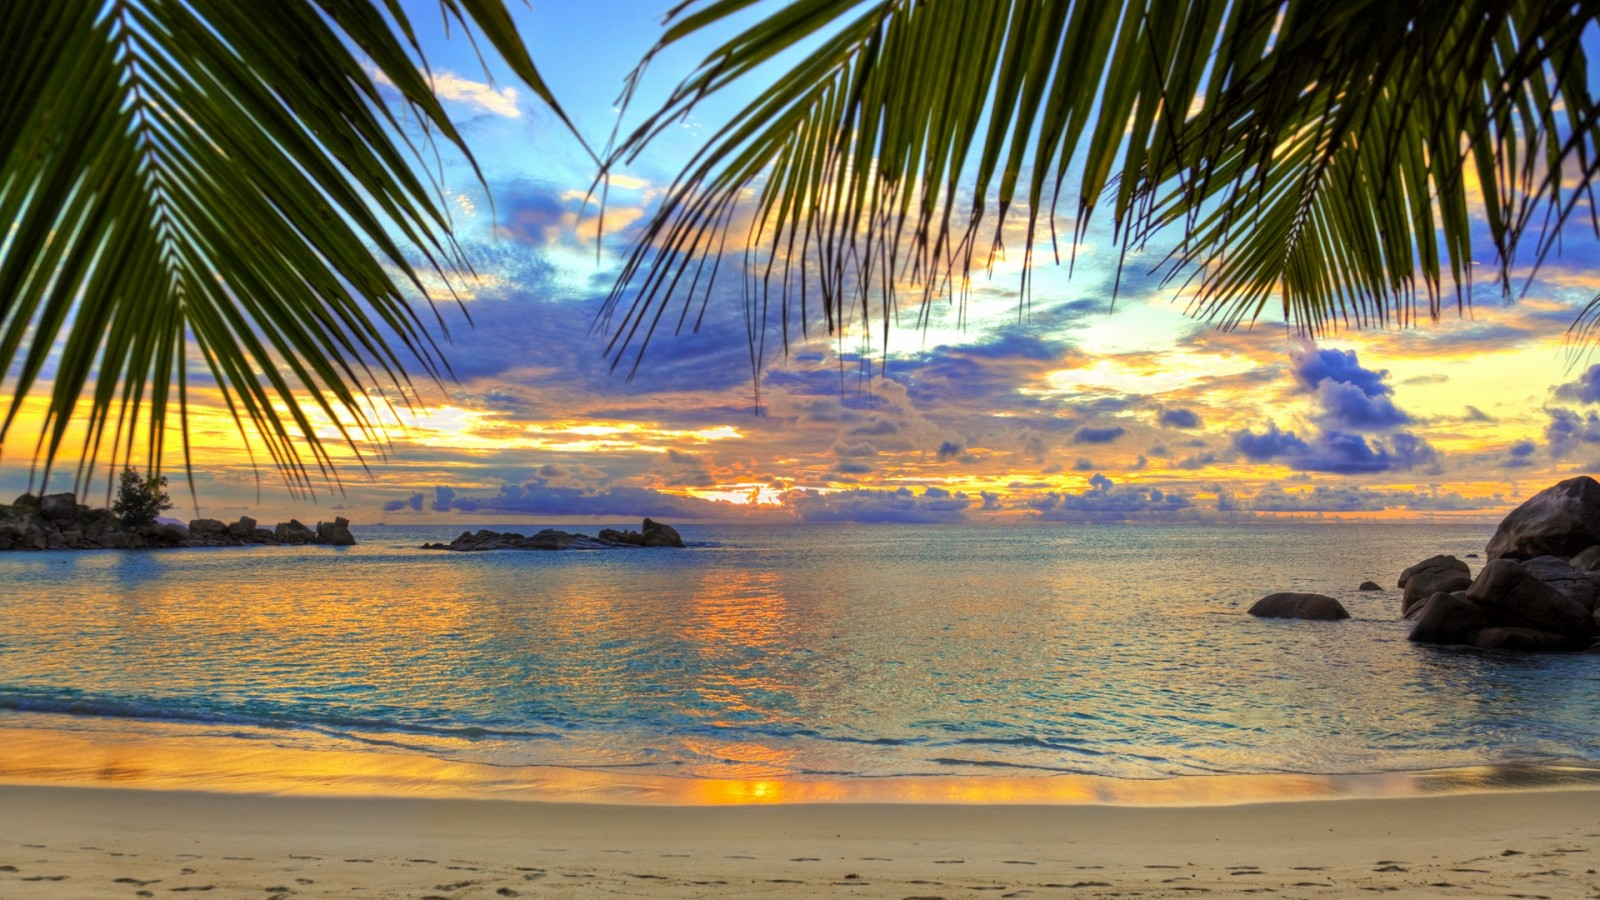 Beautiful palm trees at the beach HD Wallpaper